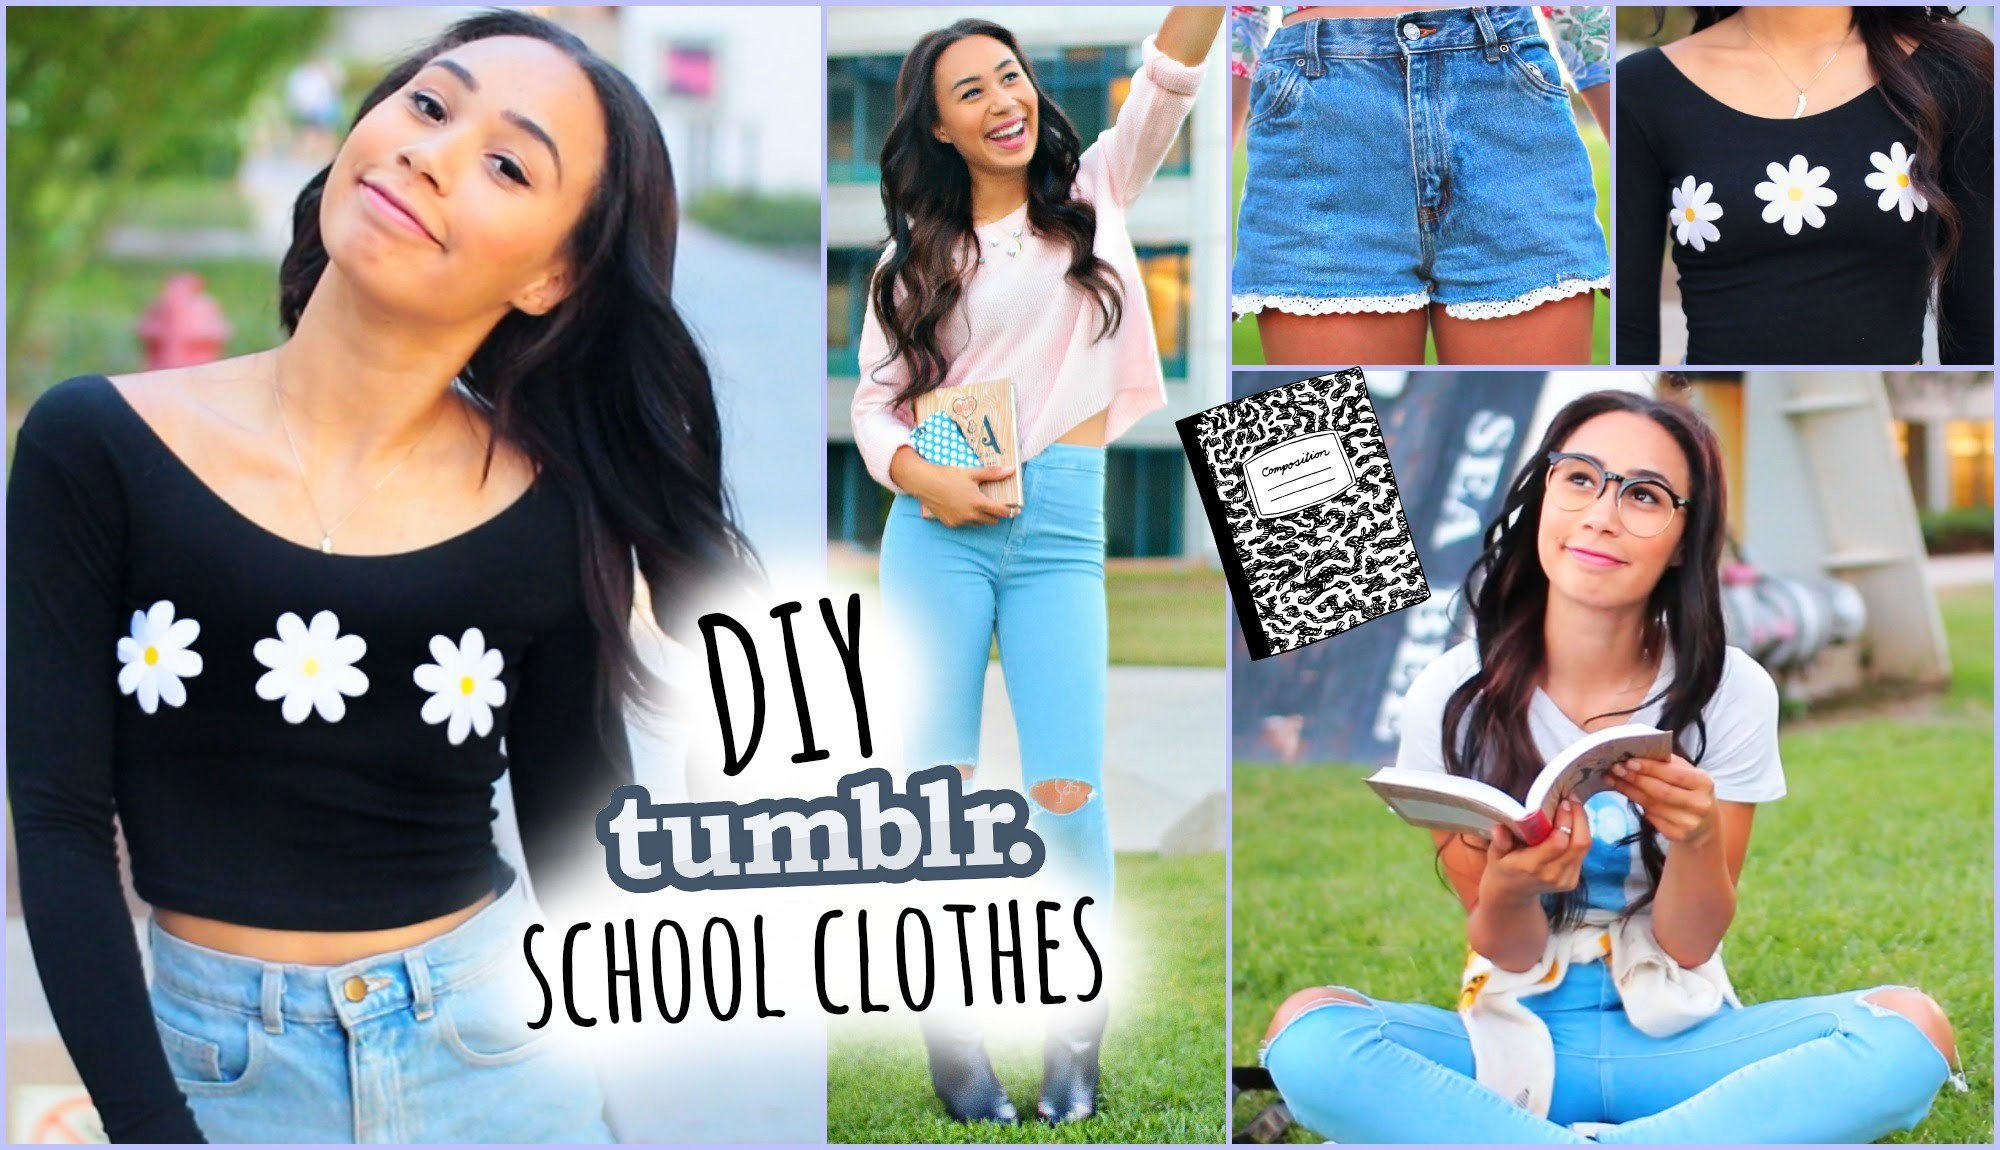 DIY Tumblr Inspired School Clothes! Shopping Life Hacks for Back To School 2014